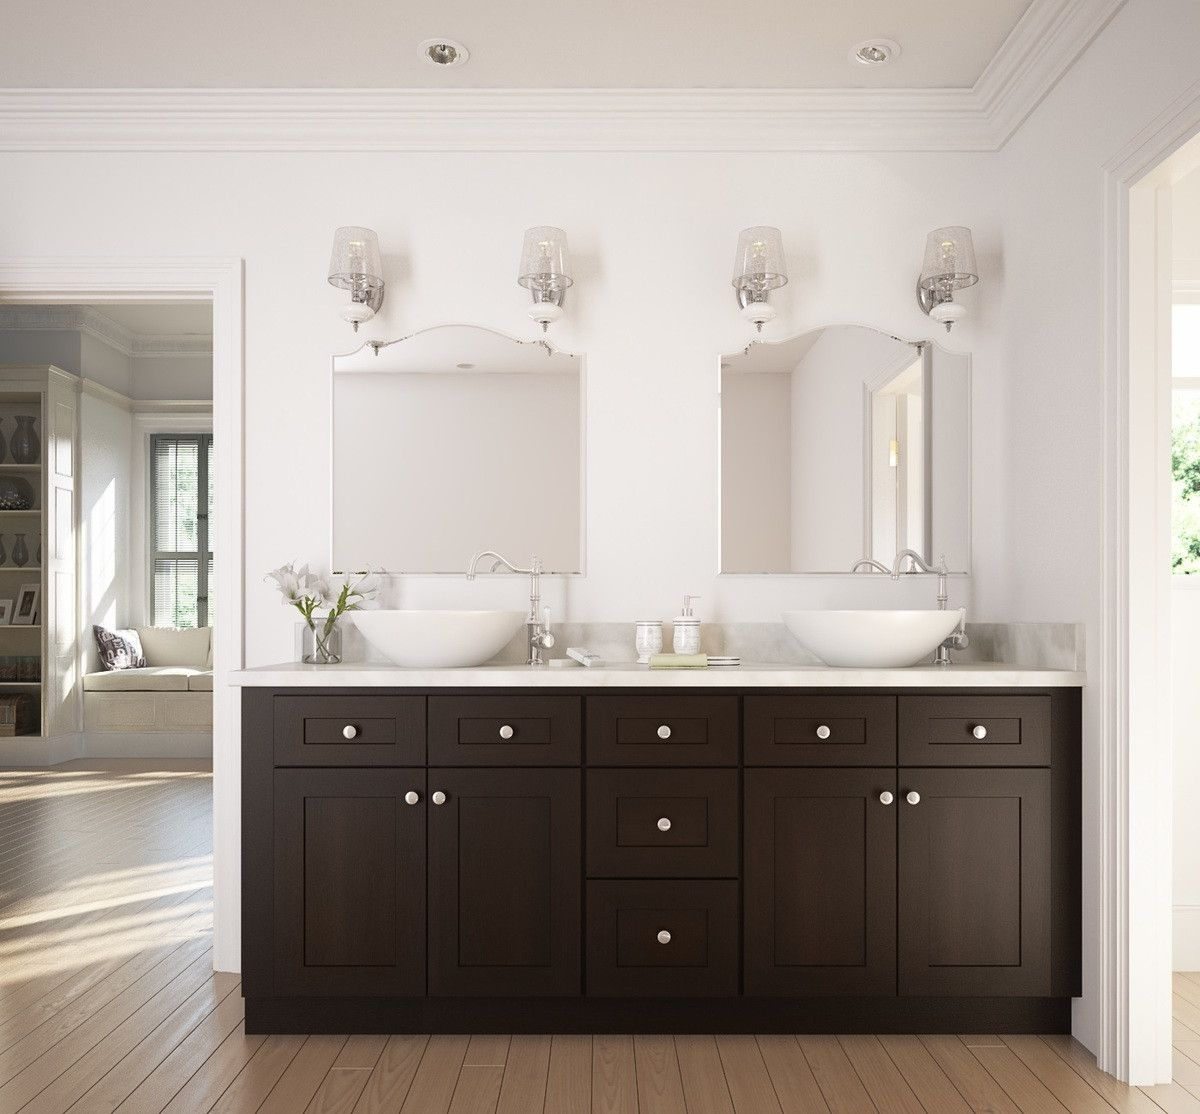 99+ Rta Bathroom Vanity Cabinets - top Rated Interior Paint Check ...